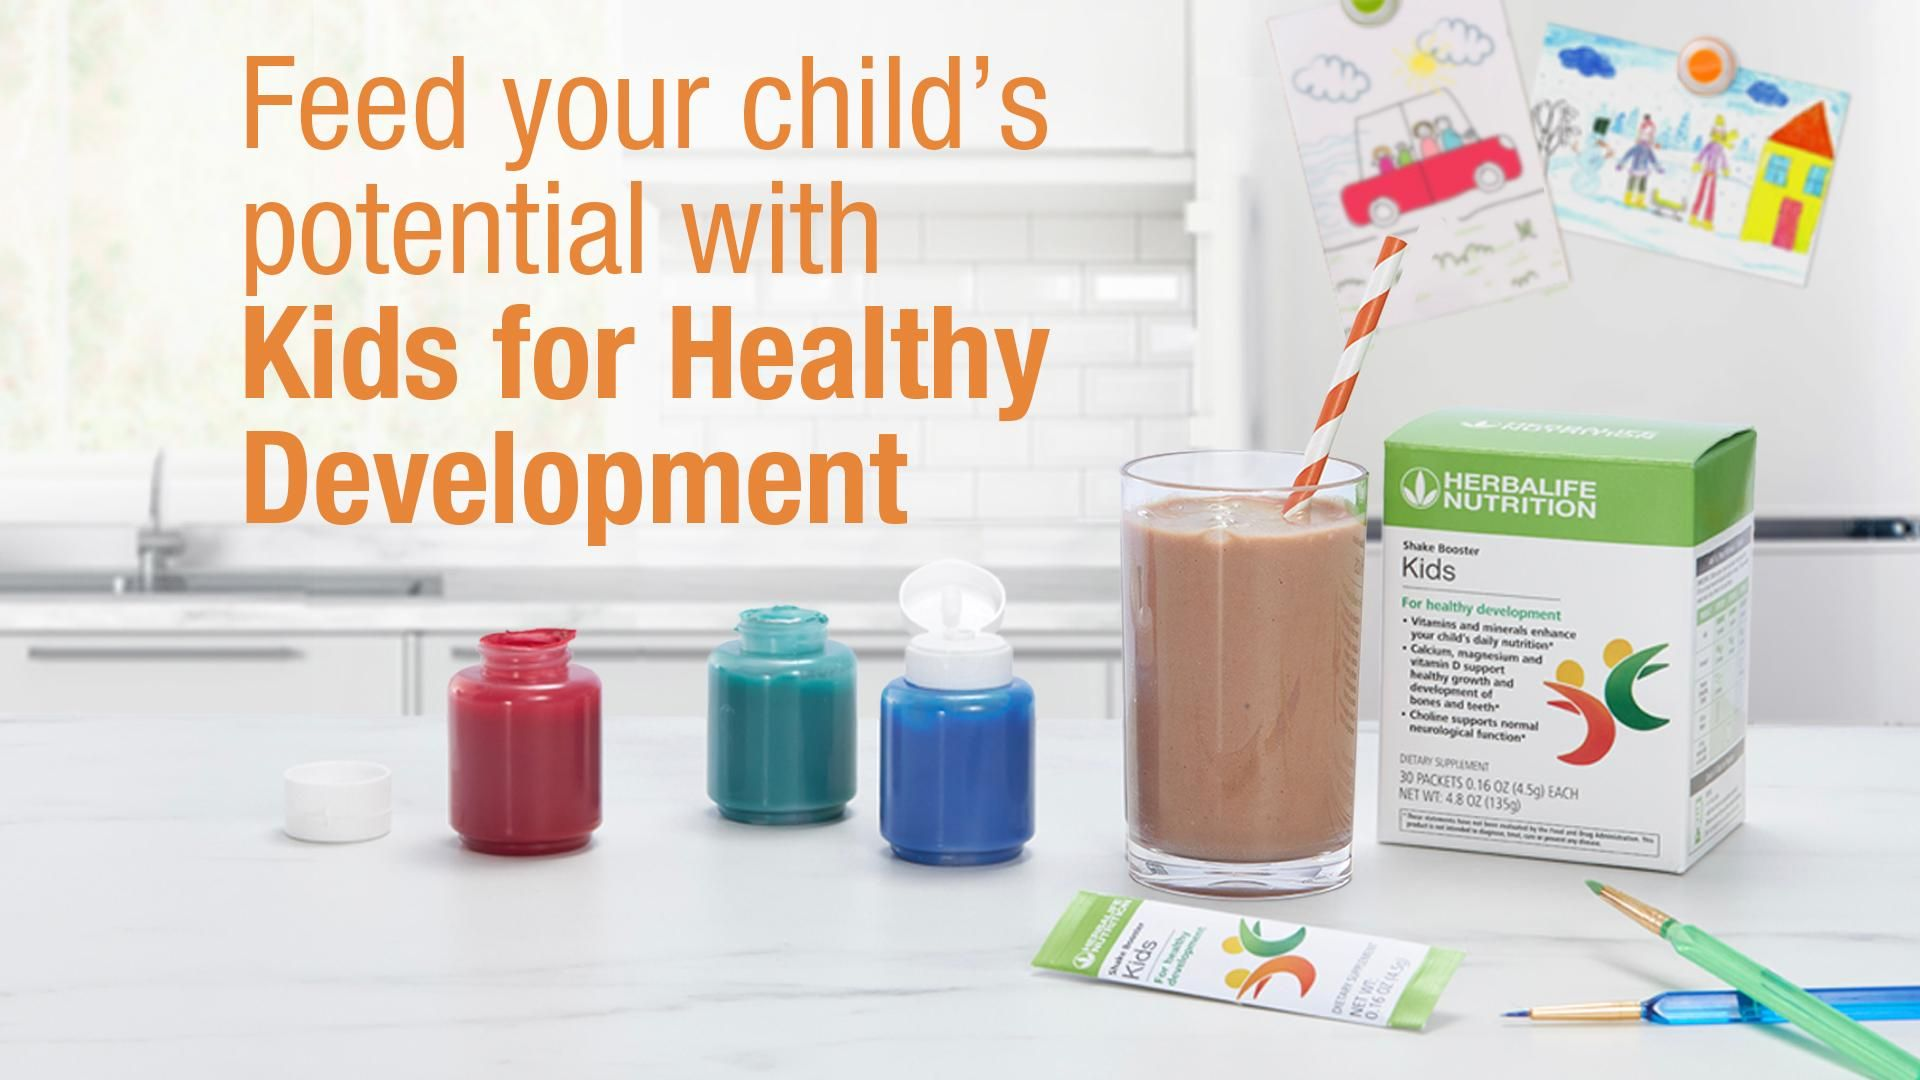 Introducing Kids for Healthy Development